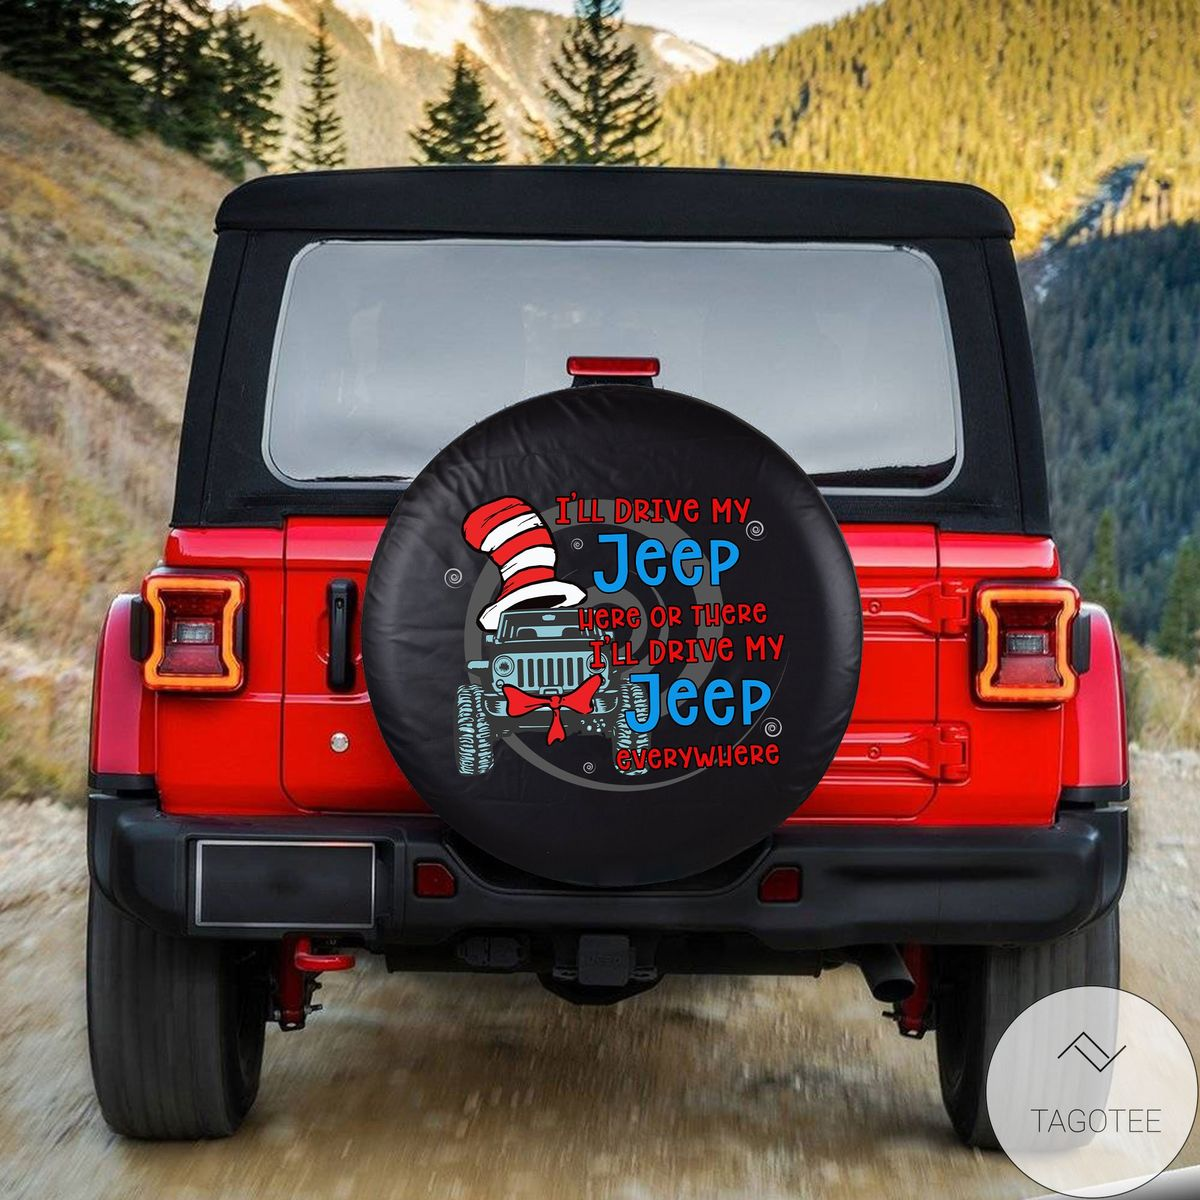 I'll Drive My Jeep Everywhere Spare Tire Cover